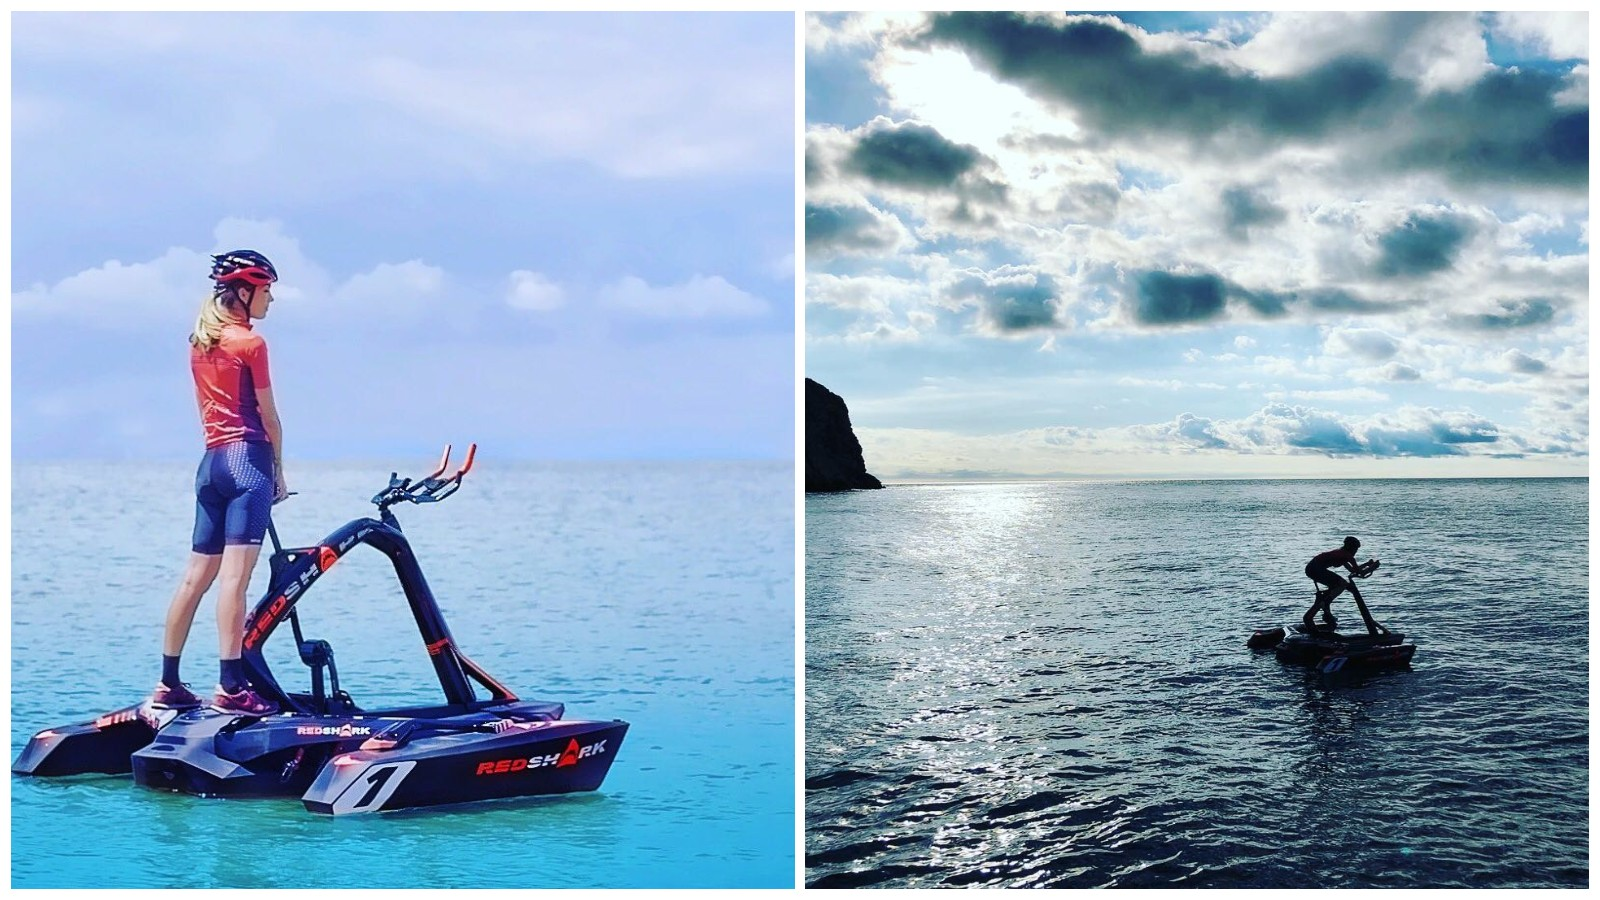 The RedShark is a pedal-powered trimaran for training and adventuring on the high seas